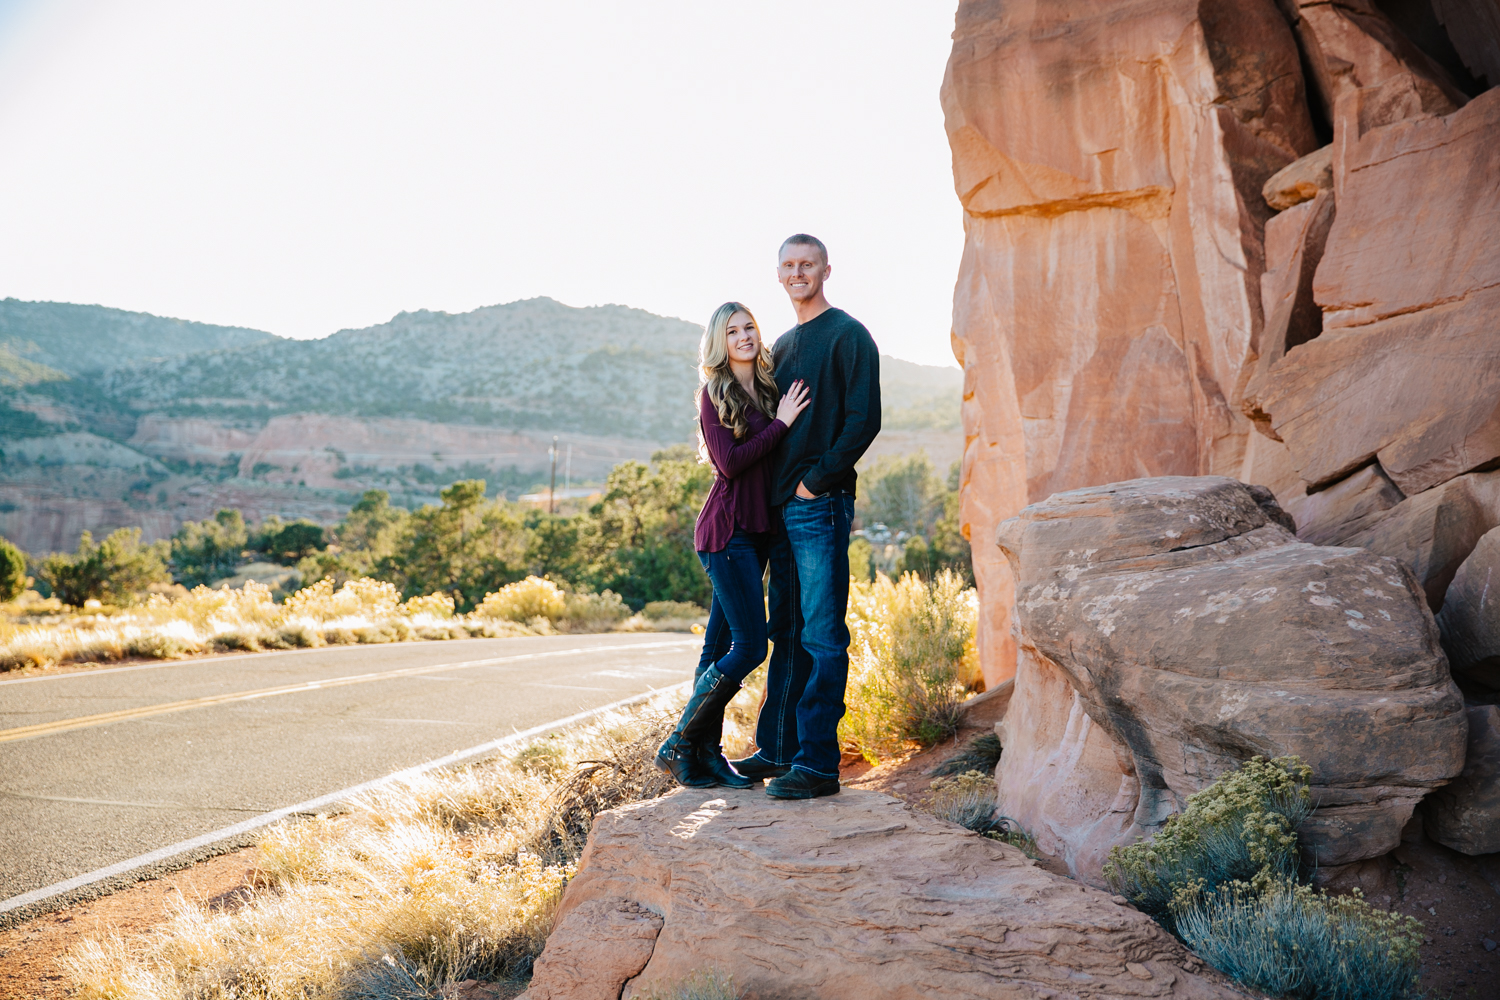 grand-junction-colorado-monument-wedding-photographer-engagements-18.jpg